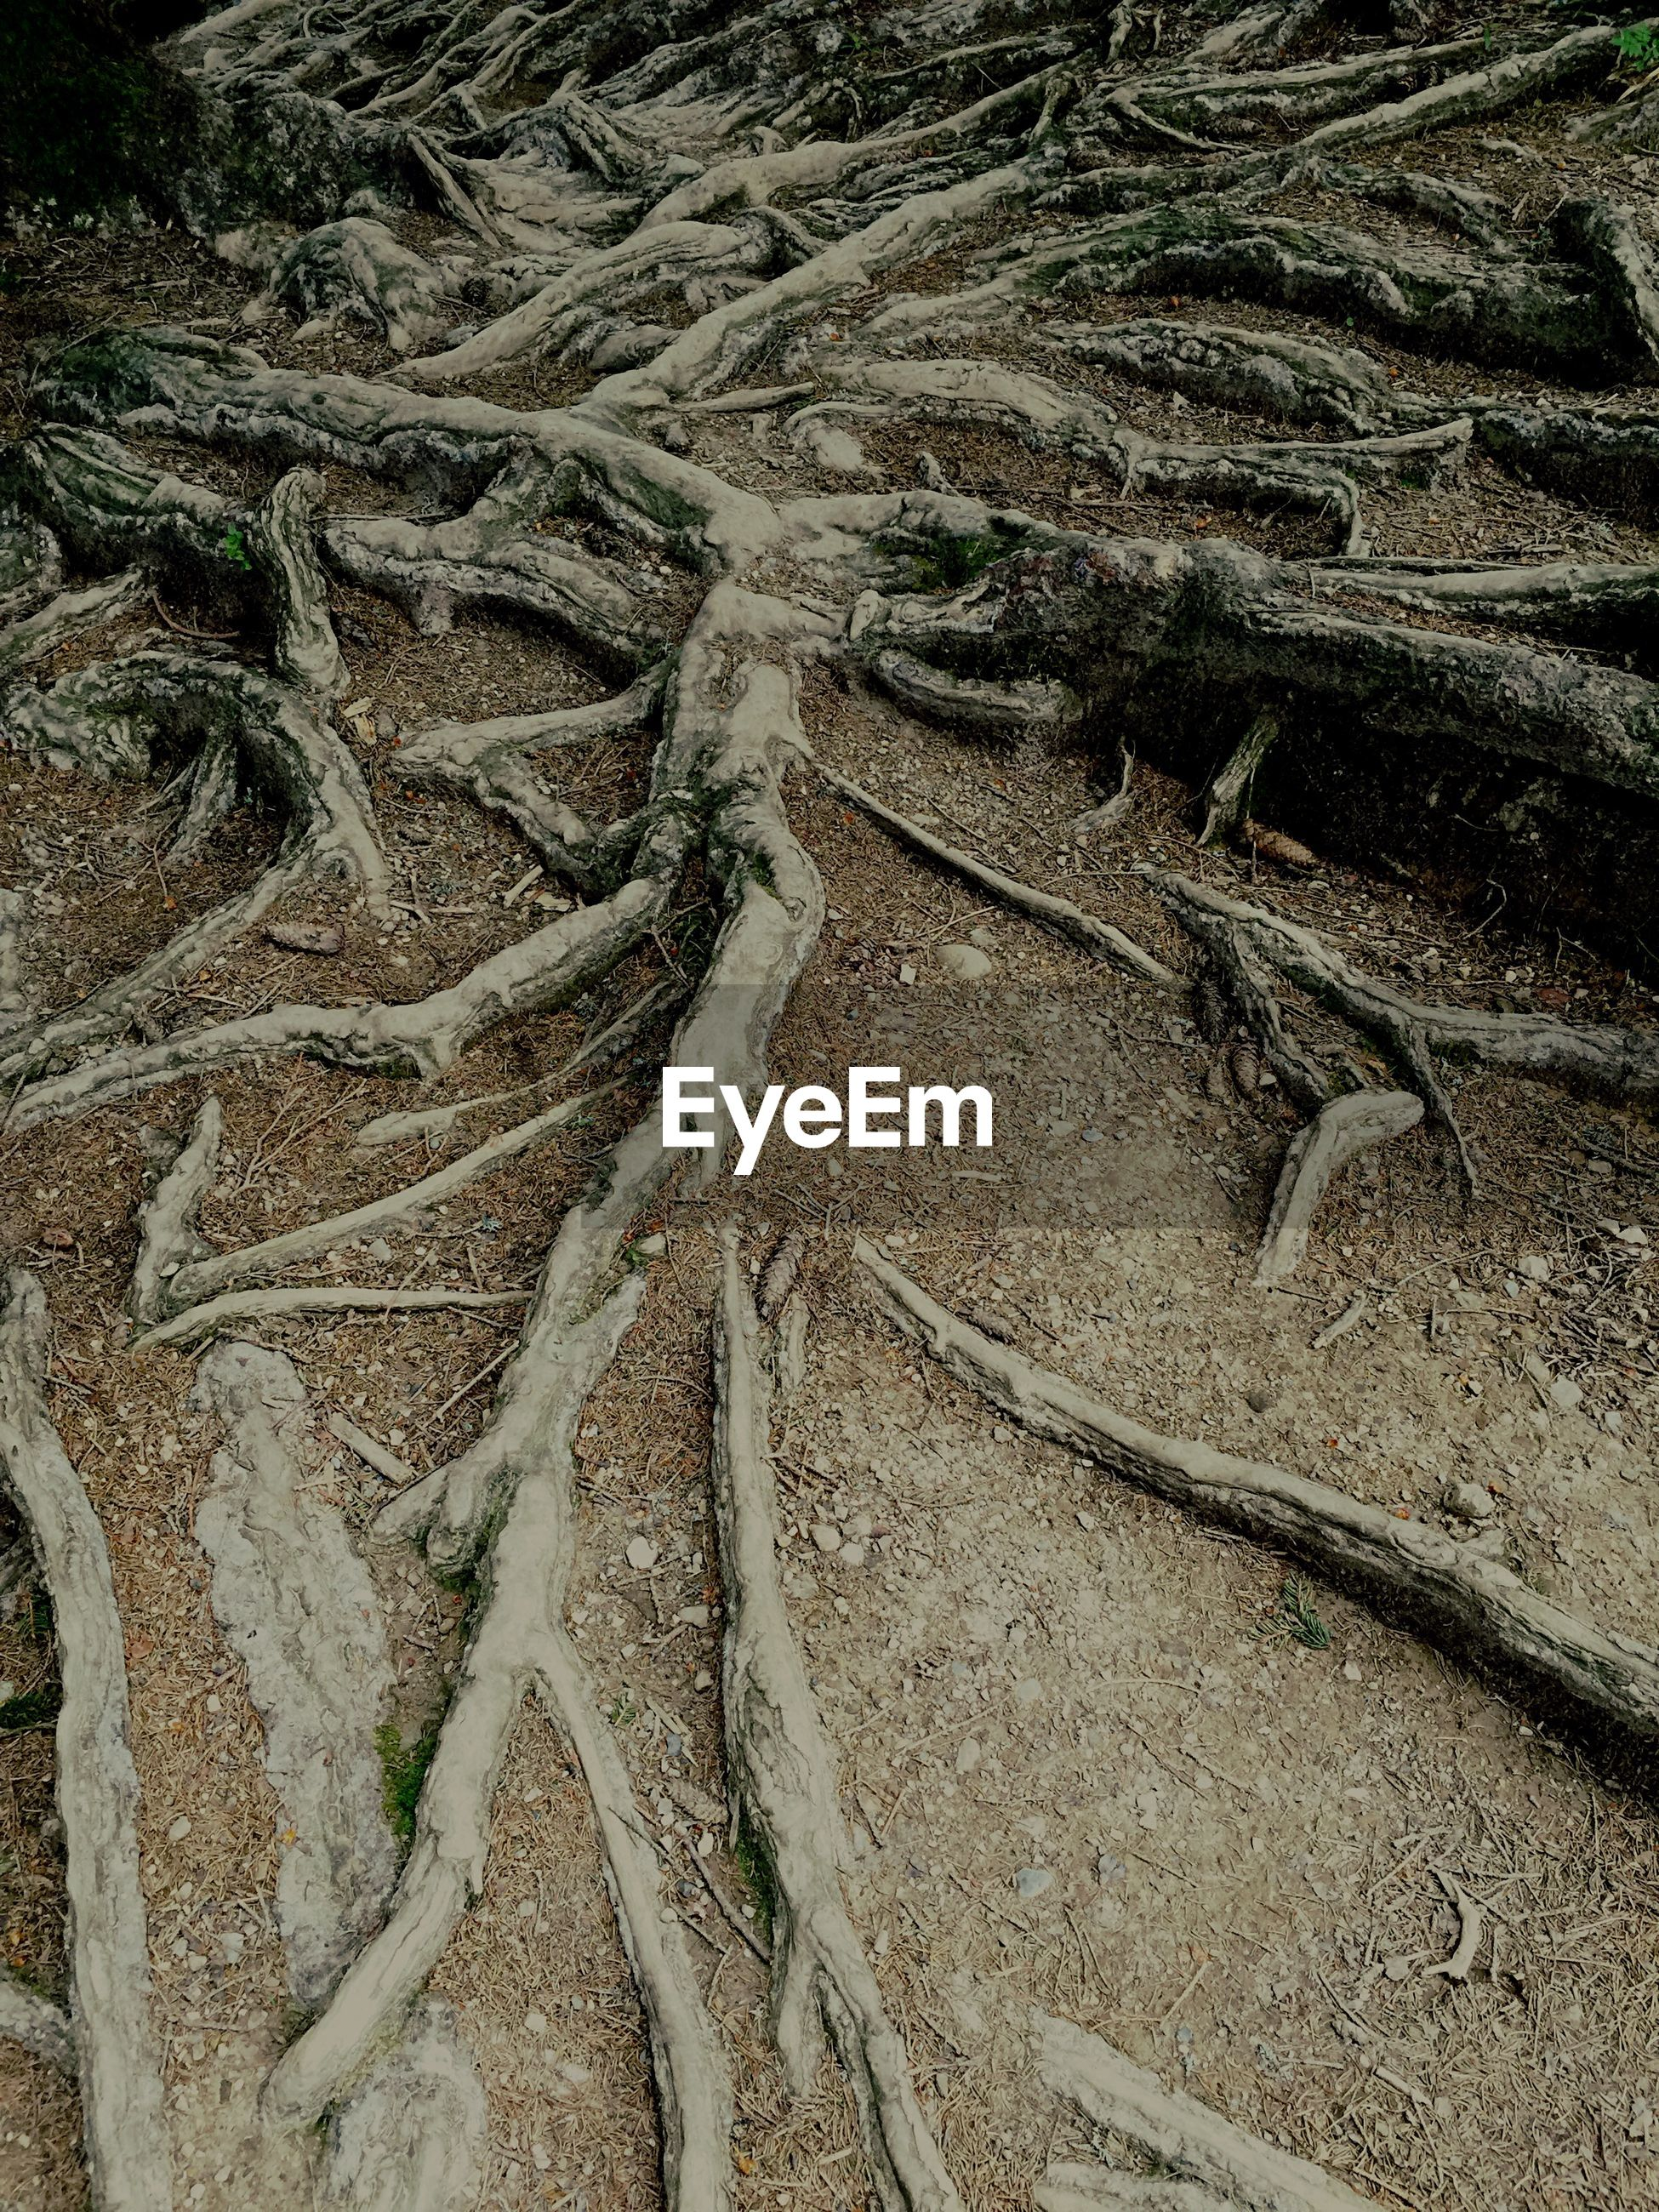 High angle view of tree roots spreading